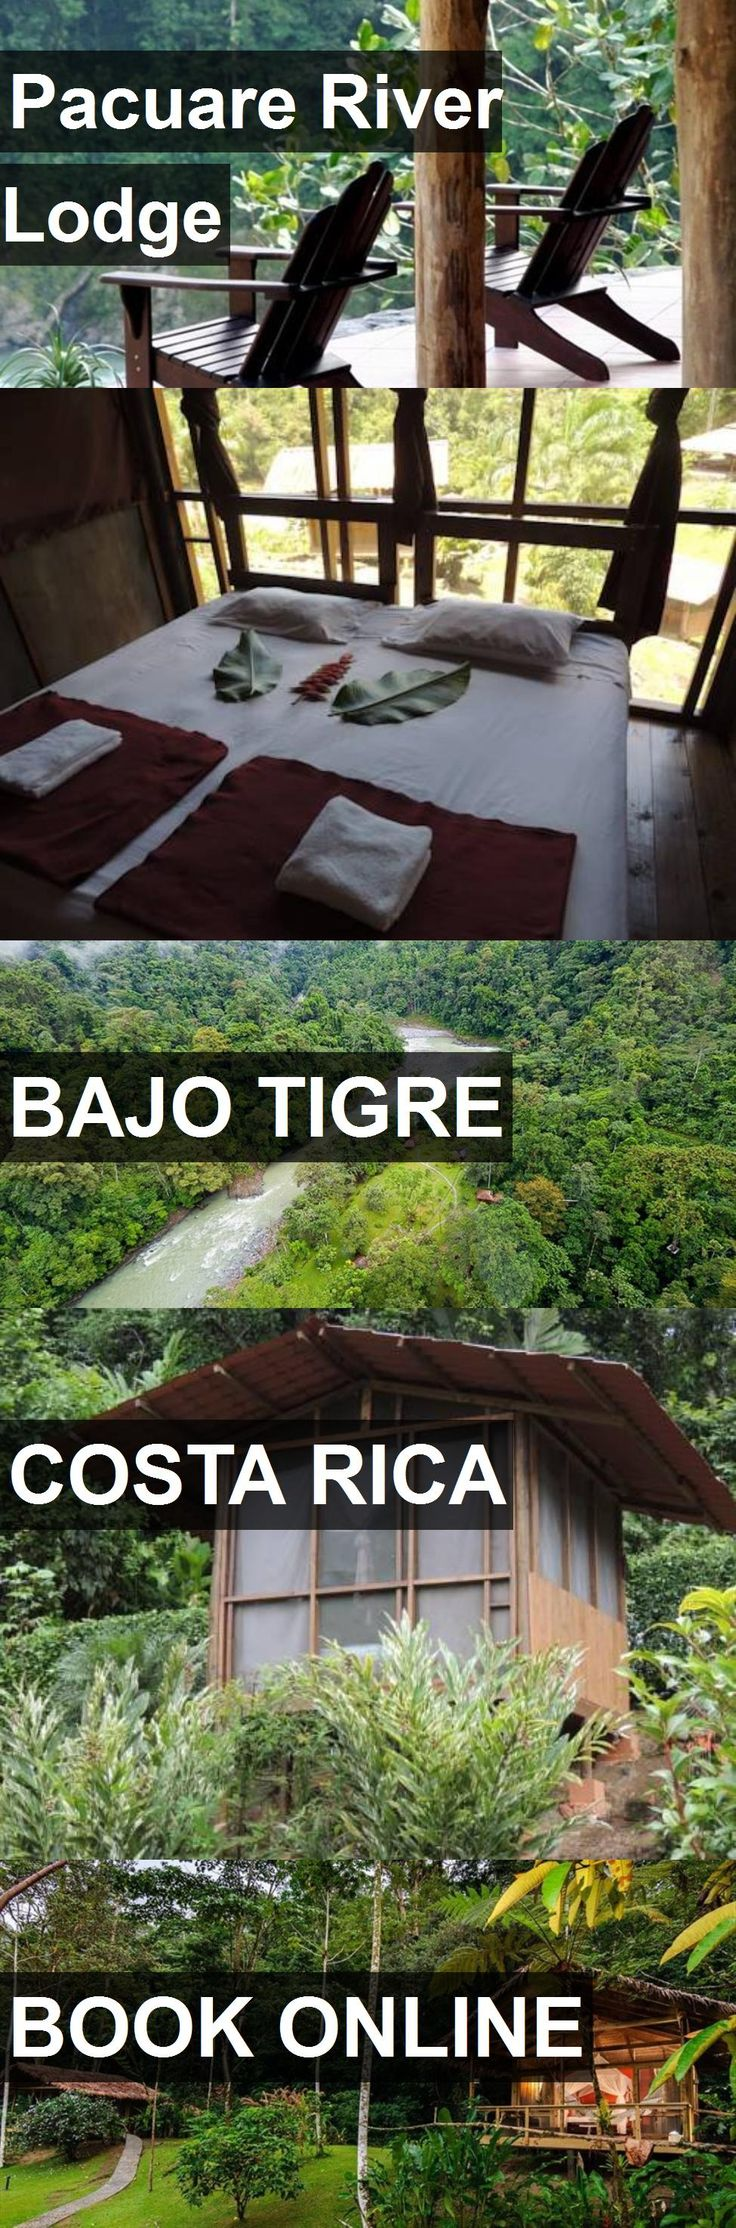 Hotel Pacuare River Lodge in Bajo Tigre, Costa Rica. For more information, photos, reviews and best prices please follow the link. #CostaRica #BajoTigre #travel #vacation #hotel